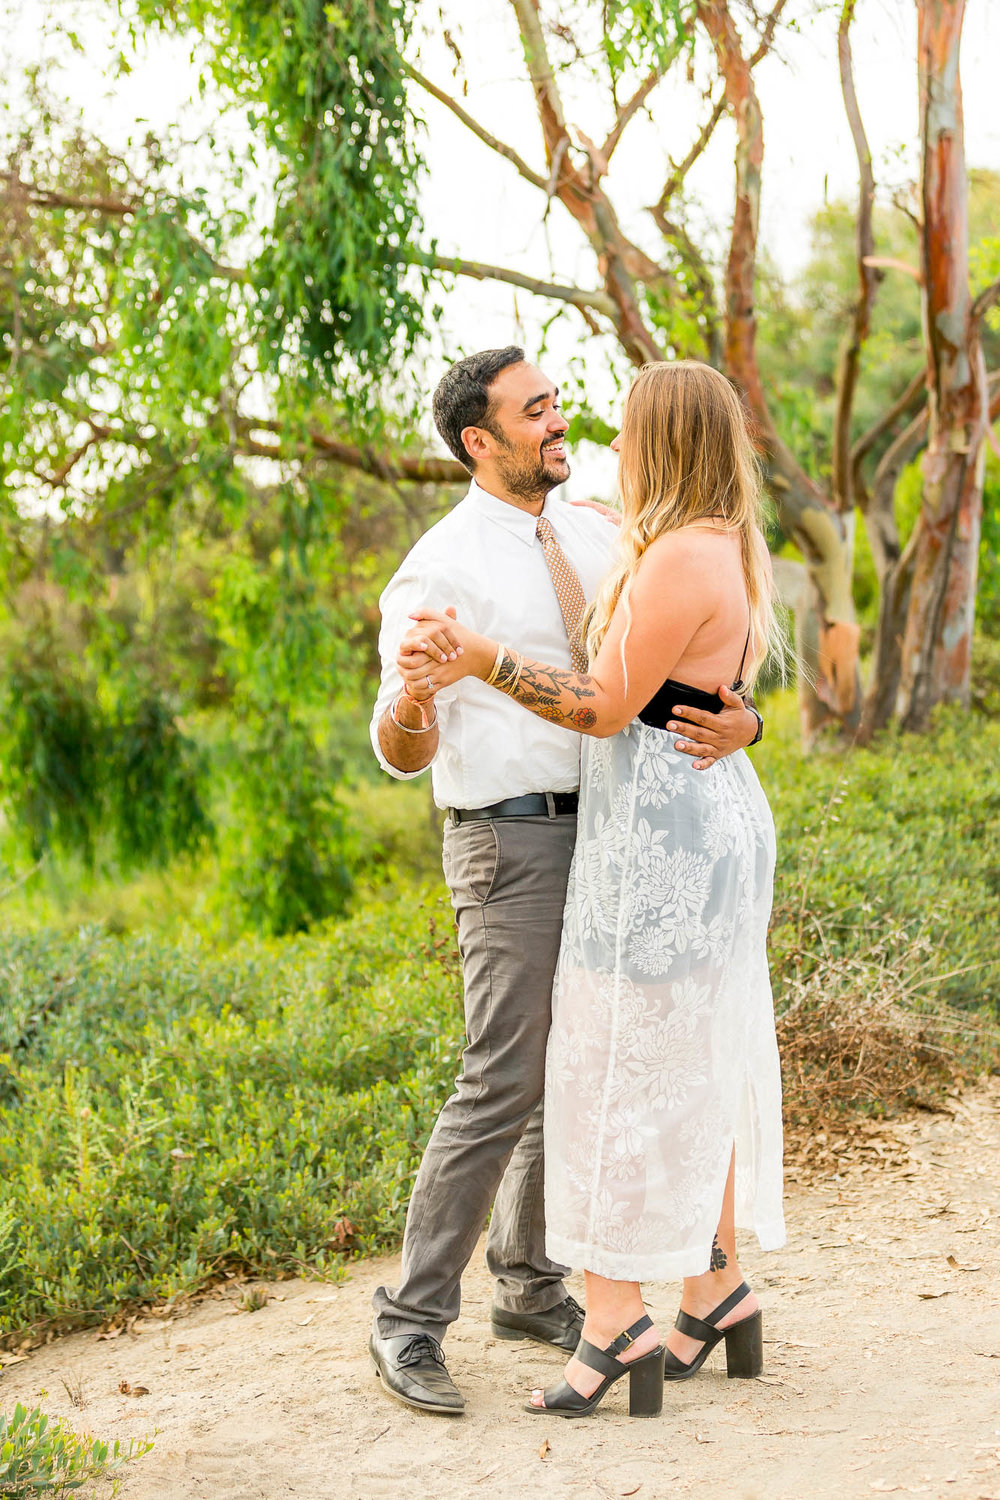 Justine_Puneet_Cardiff_Engagement_Session_099.jpg